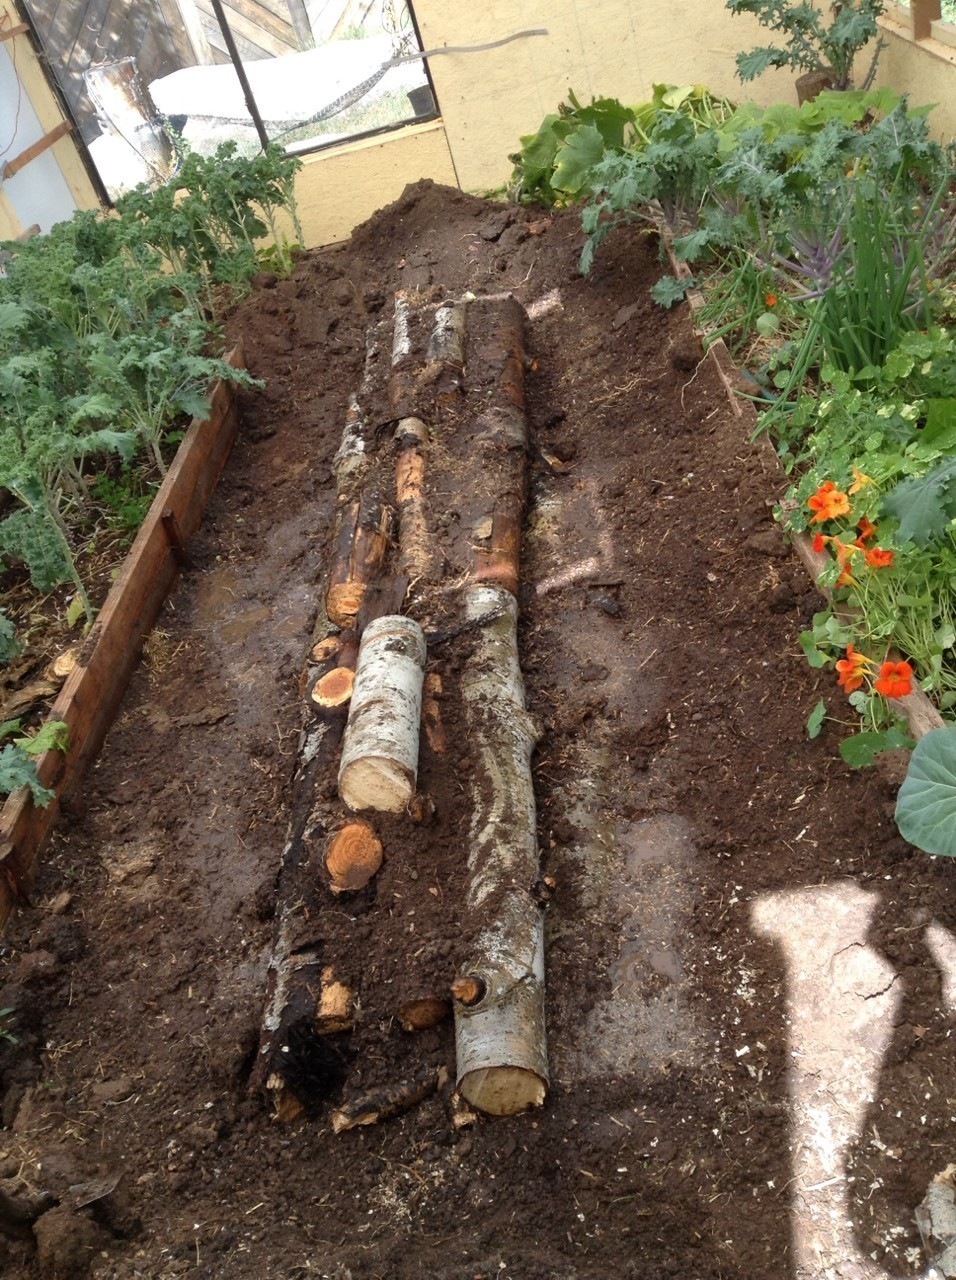 i placed these aspen logs in a shallow trench , then put the soil from the dug out trench over the logs